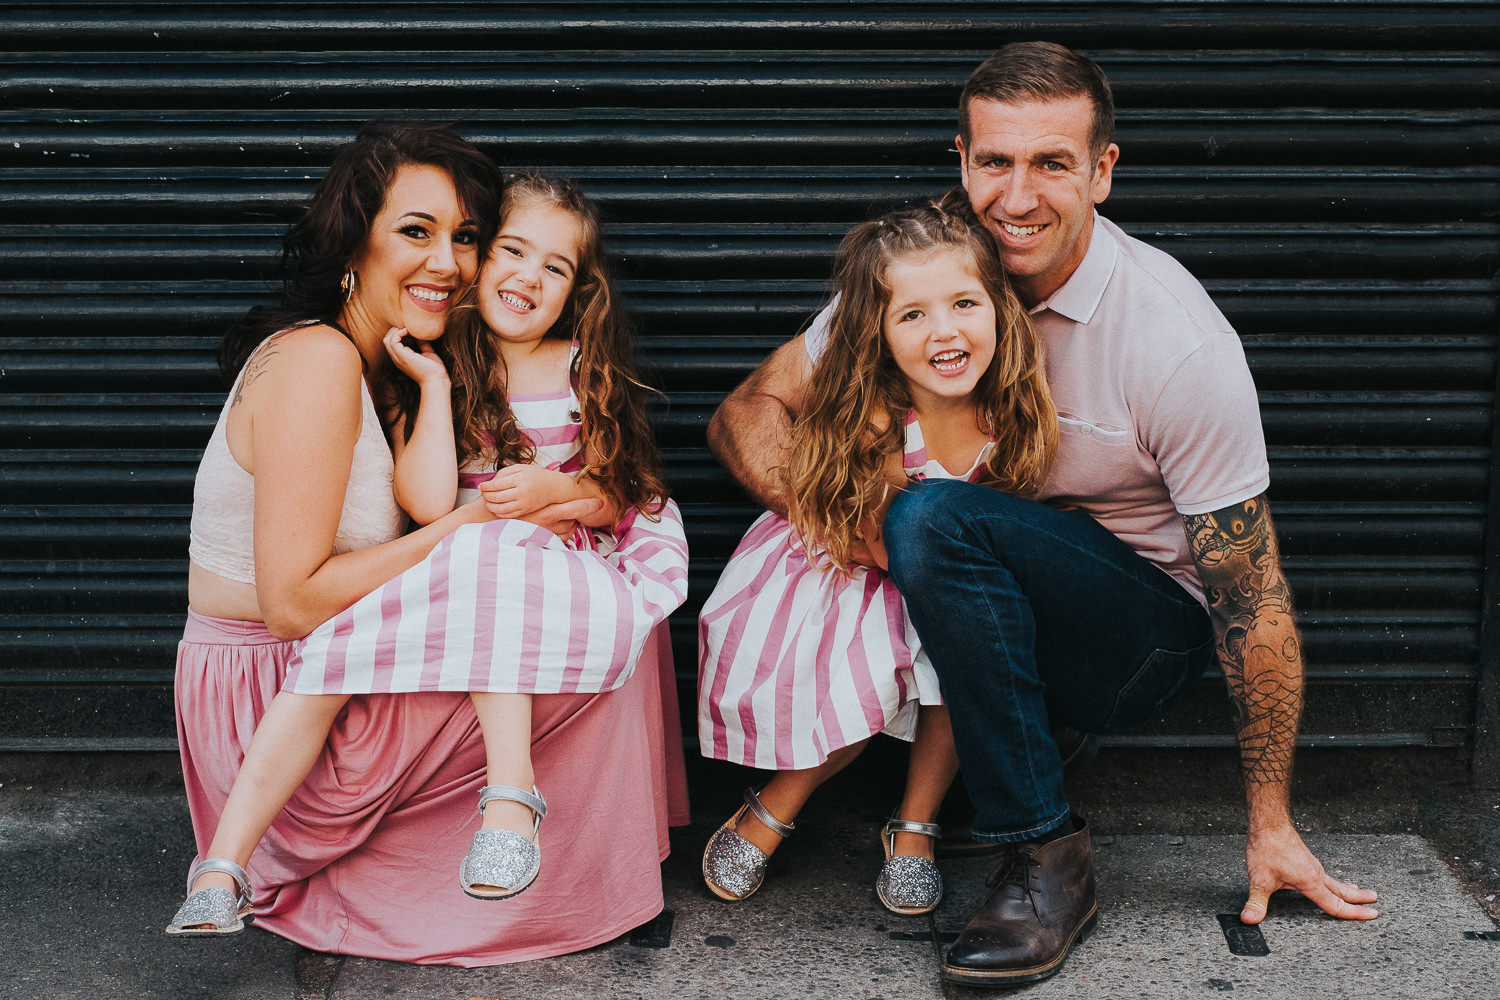 family photo shoot in shoreditch street art twin girls and parents fun portrait